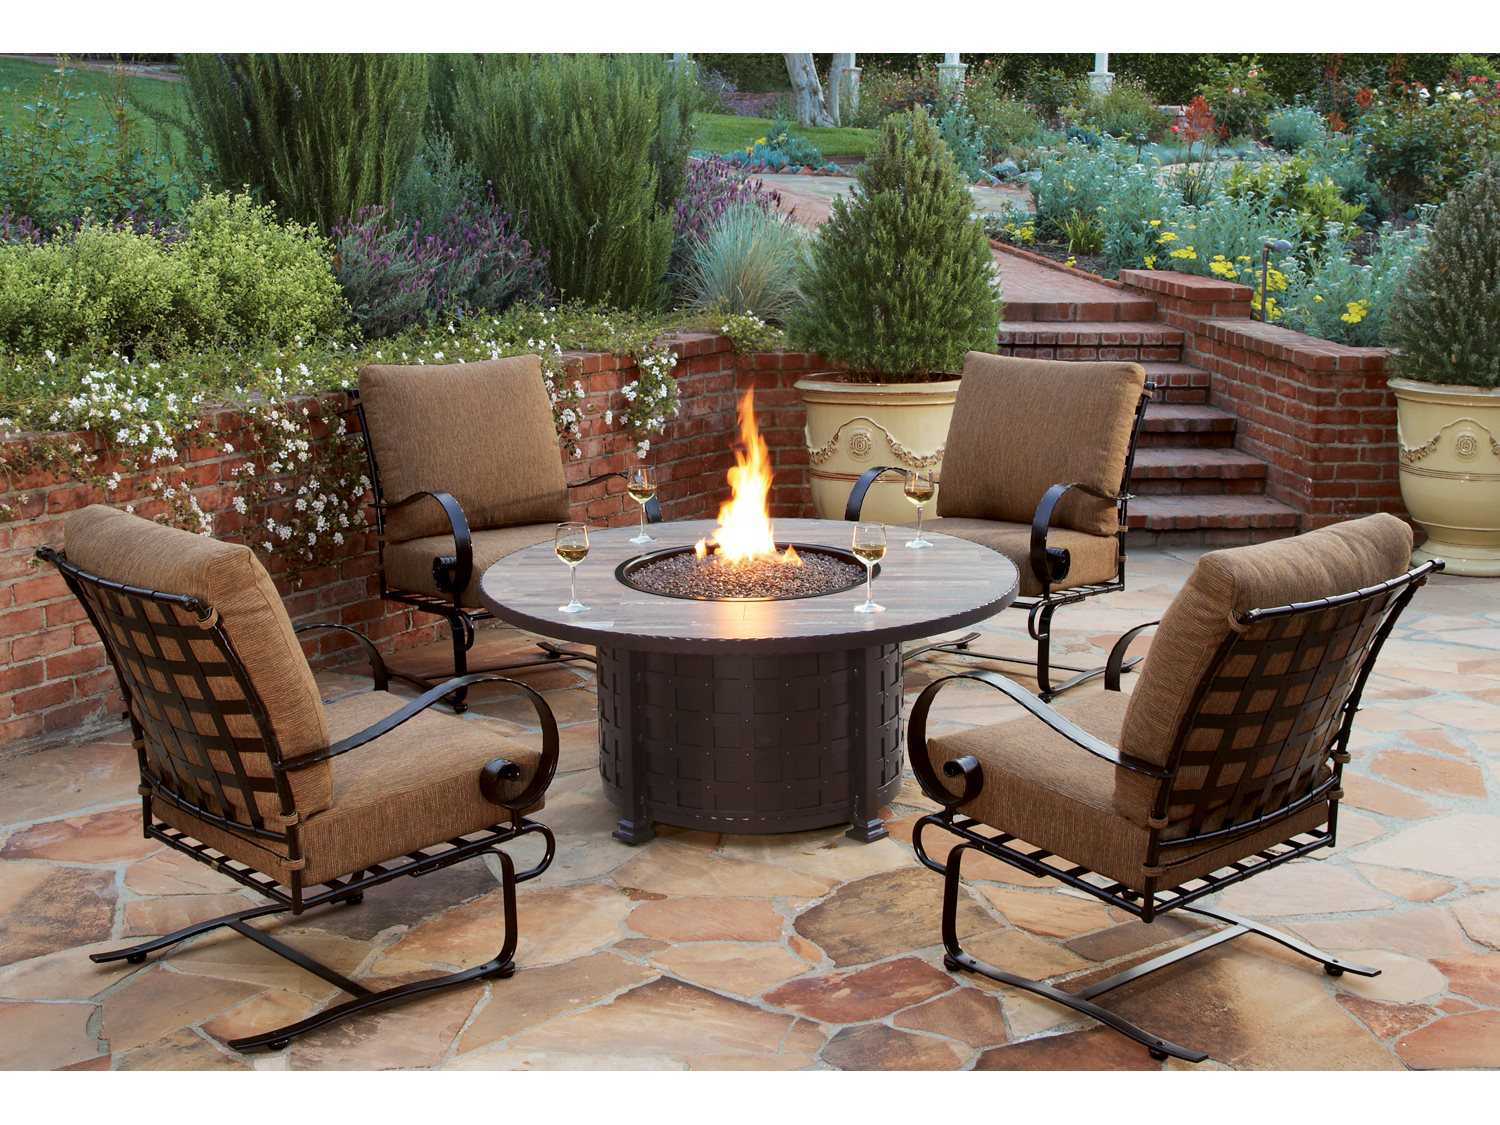 Ow Lee Casual Fireside Classico Wrought Iron 42 Round Chat